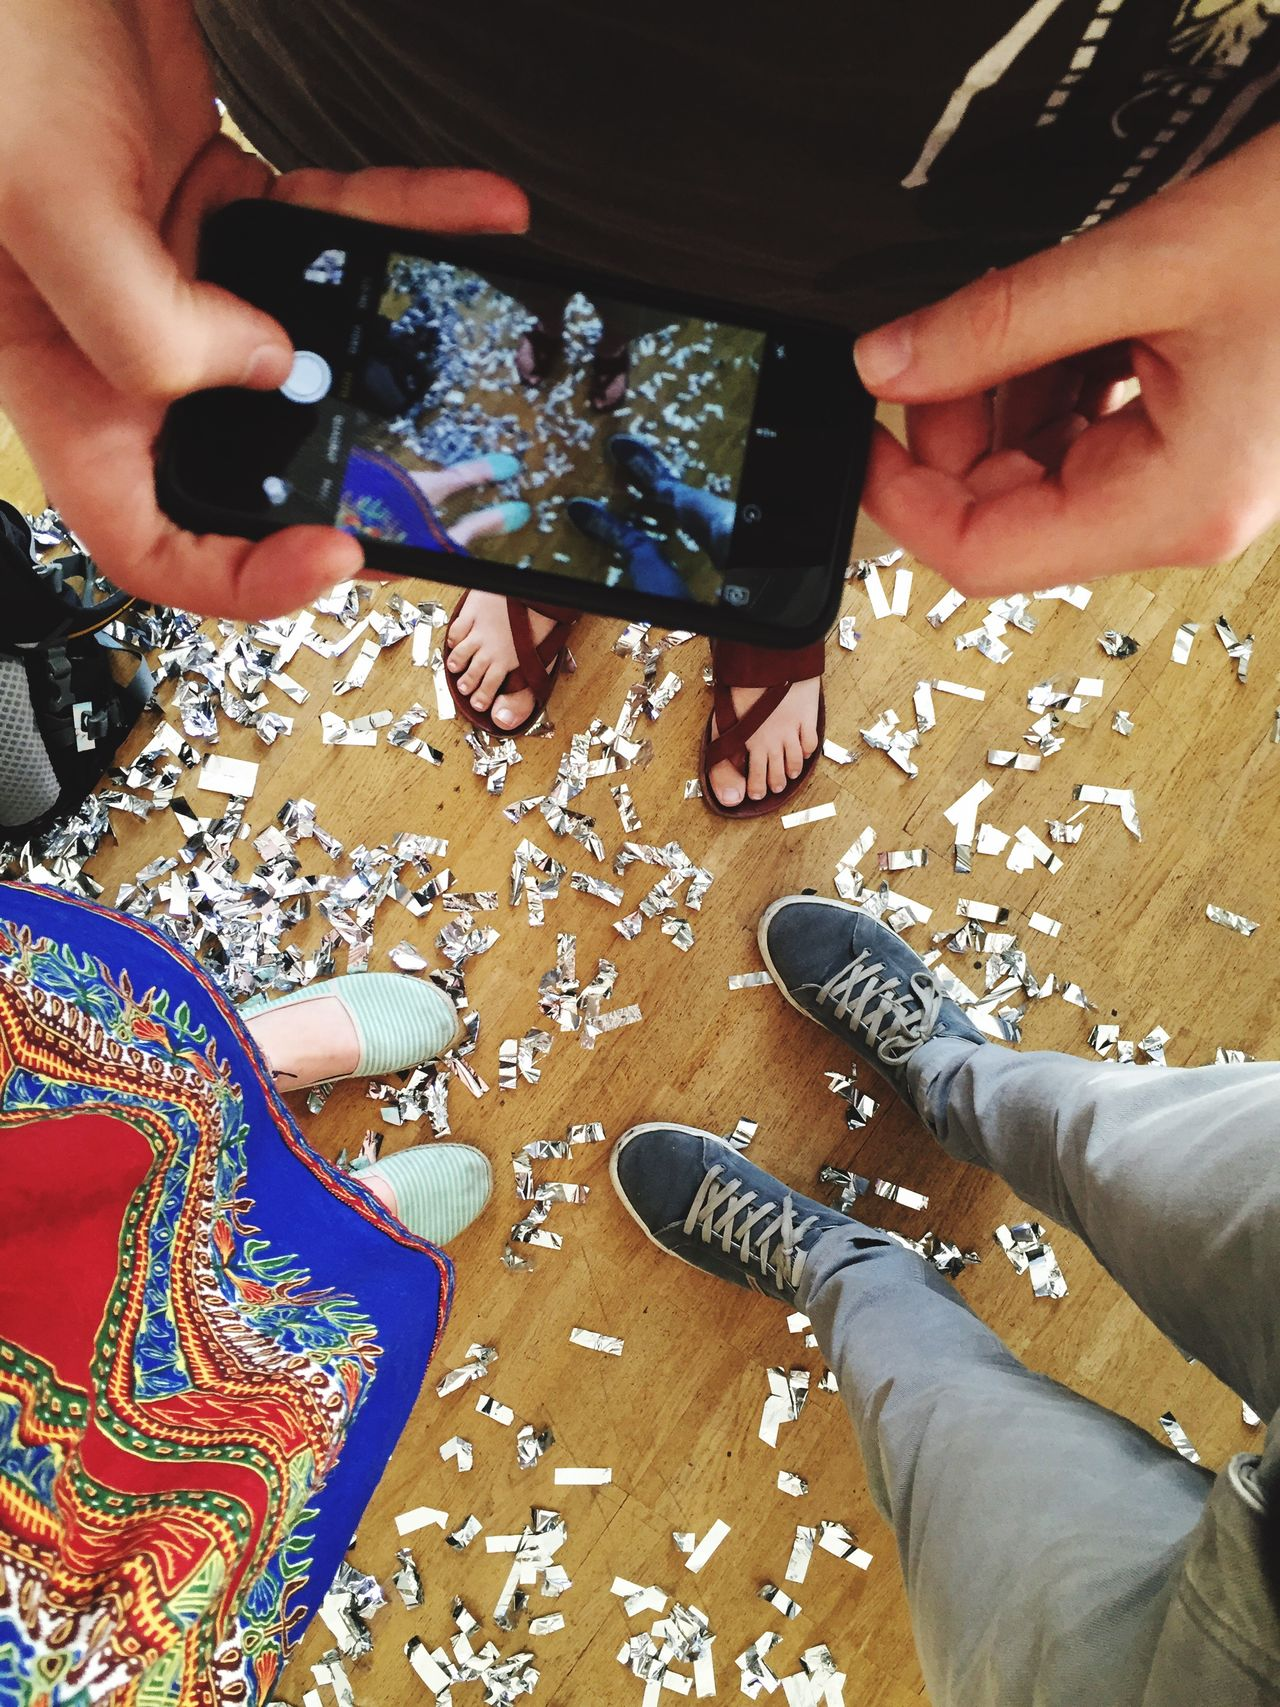 Office Happenings The Roll EyeEm Apps Launch Party Eyeem Studio Kreuzberg Confetti Party Photos Of Photos Taking Photos